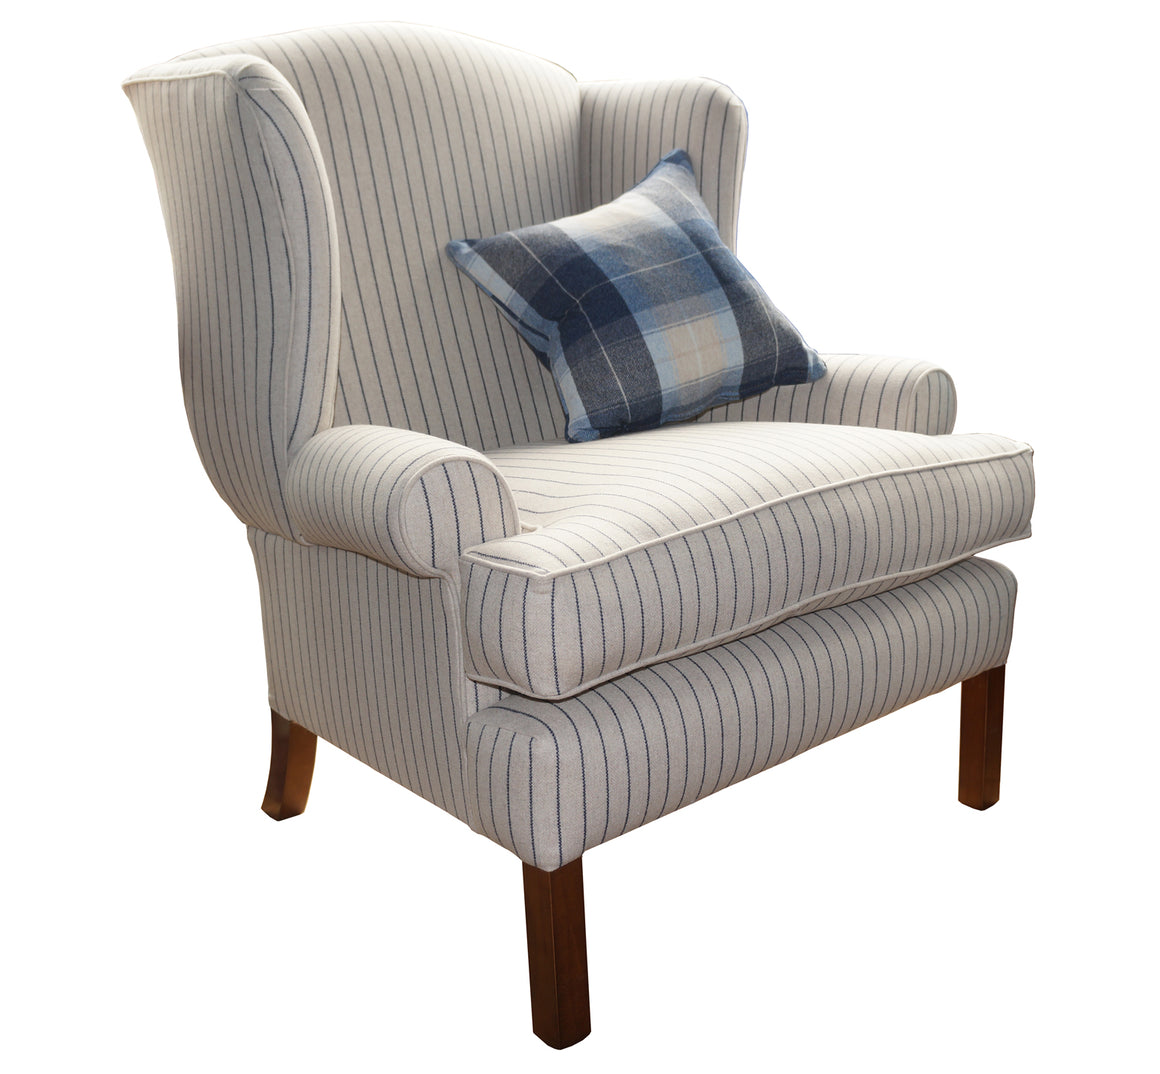 Jodphur Large Wing Chair in Sanderson Byron